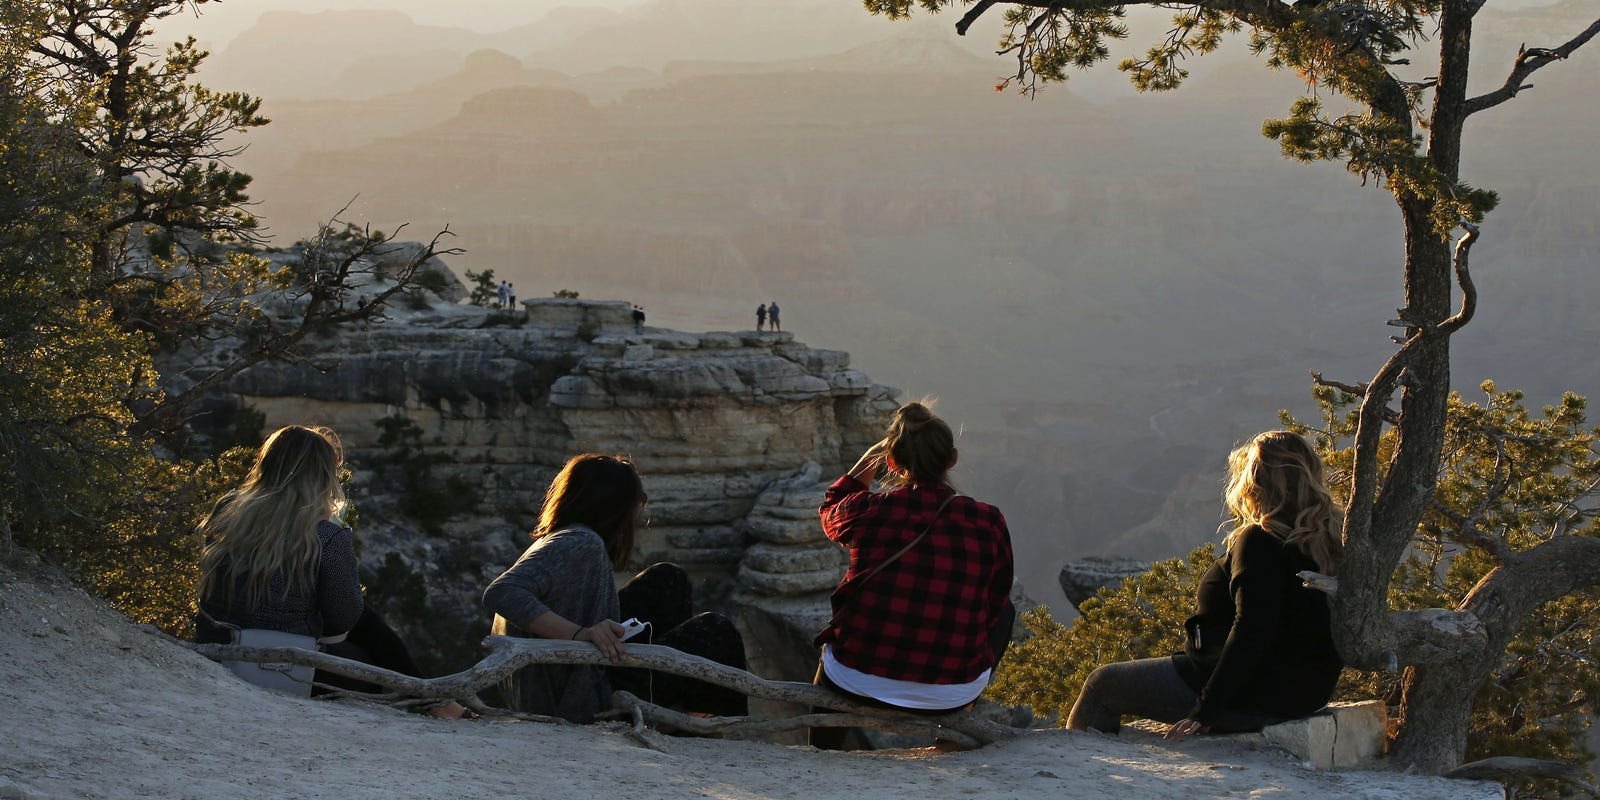 Kid-friendly Grand Canyon: Here are the 6 best activities for families at the South Rim